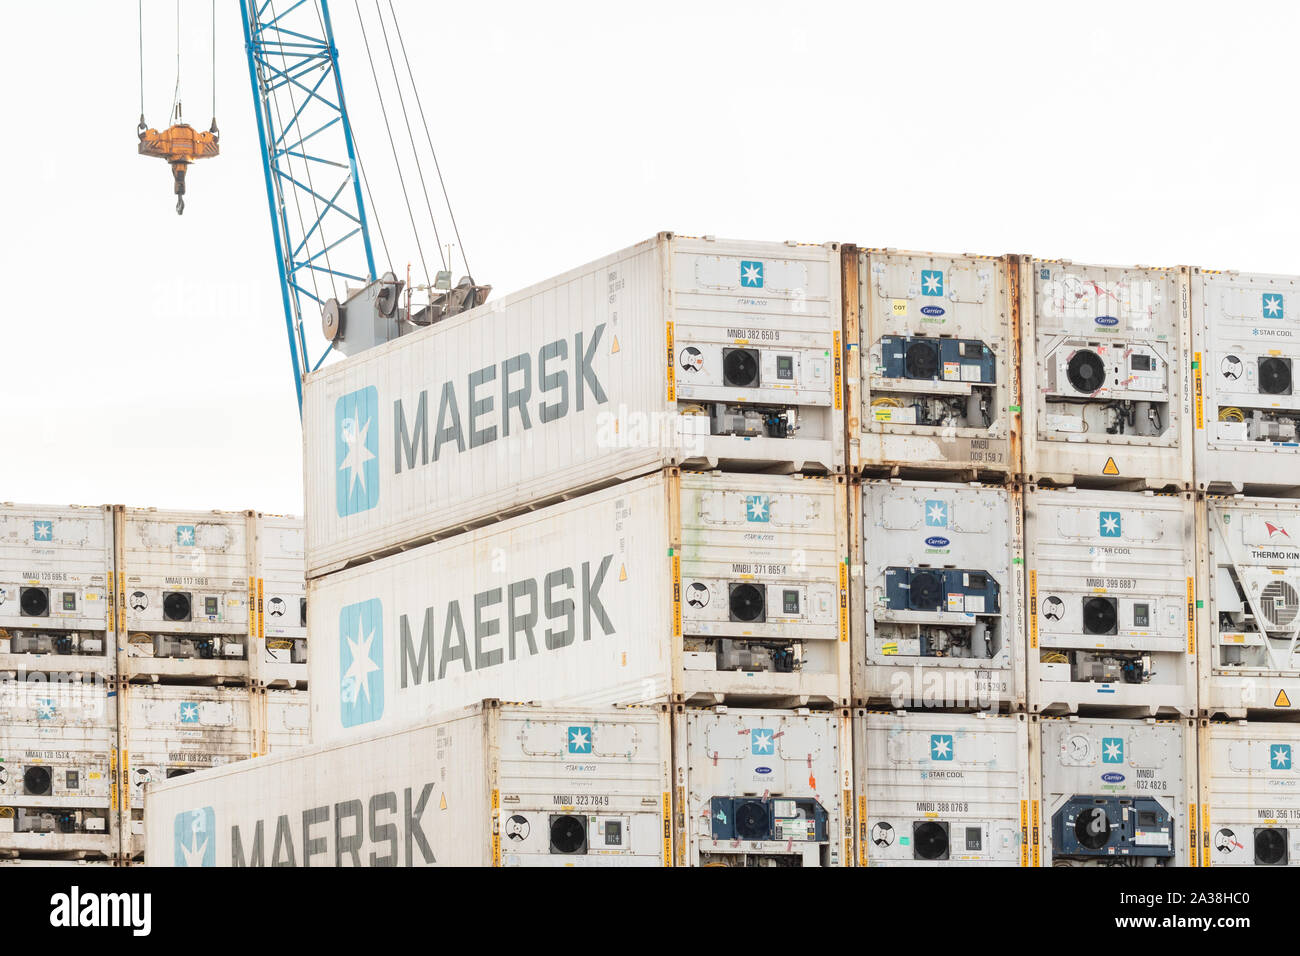 Maersk refrigerated shipping containers Stock Photo